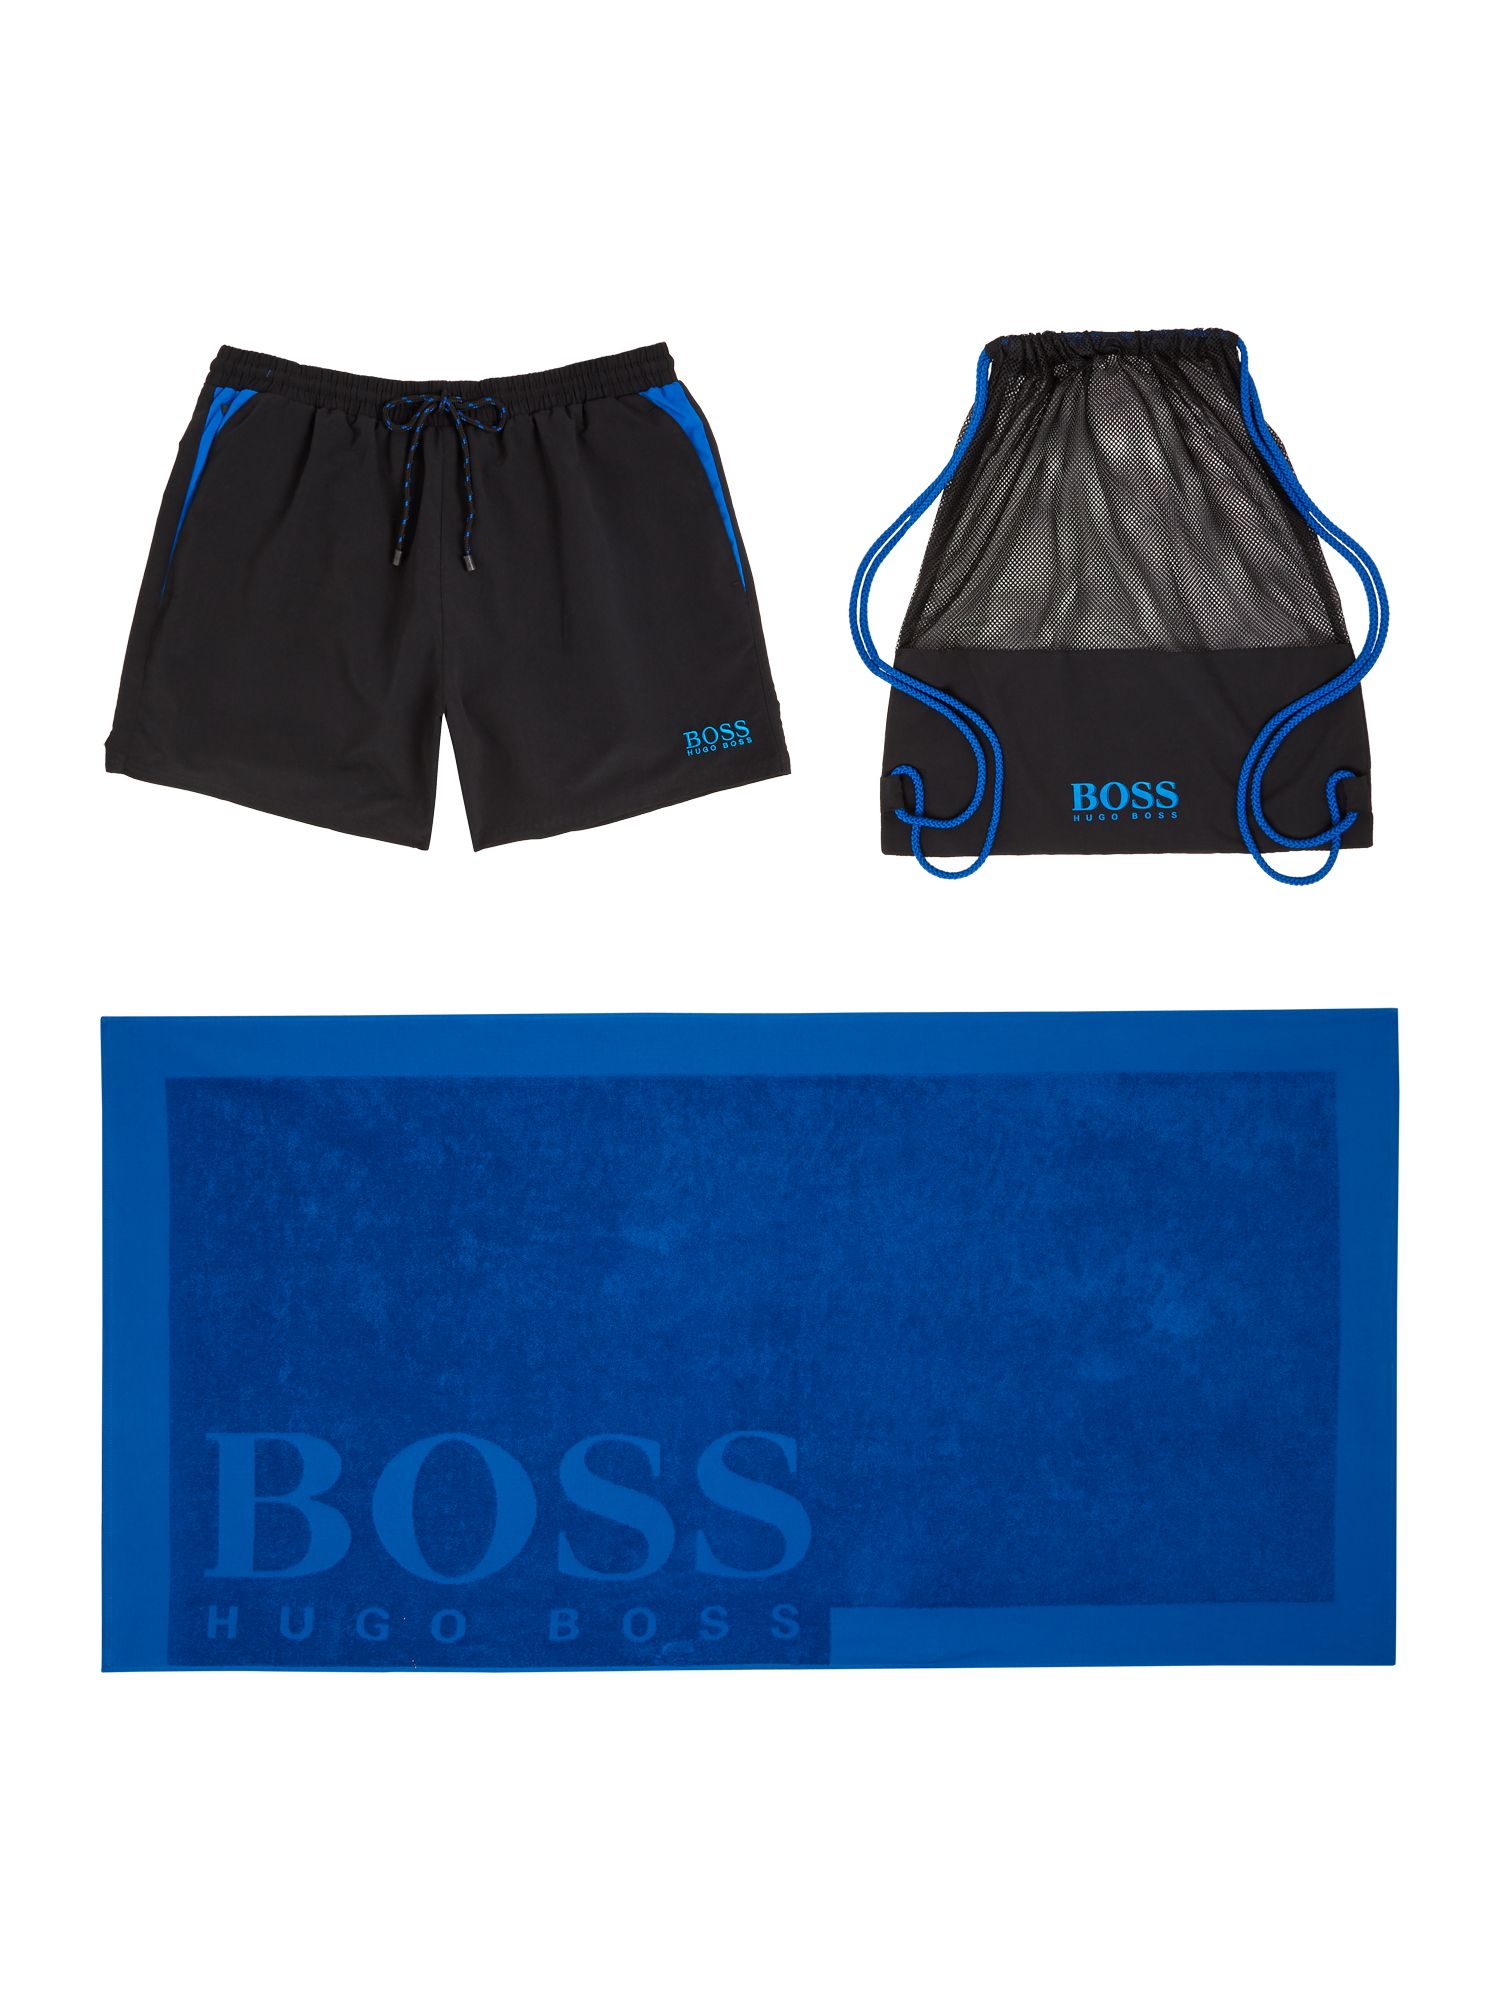 Men's Hugo Boss Swimshorts, Towel and Beach Bag Set, Blue